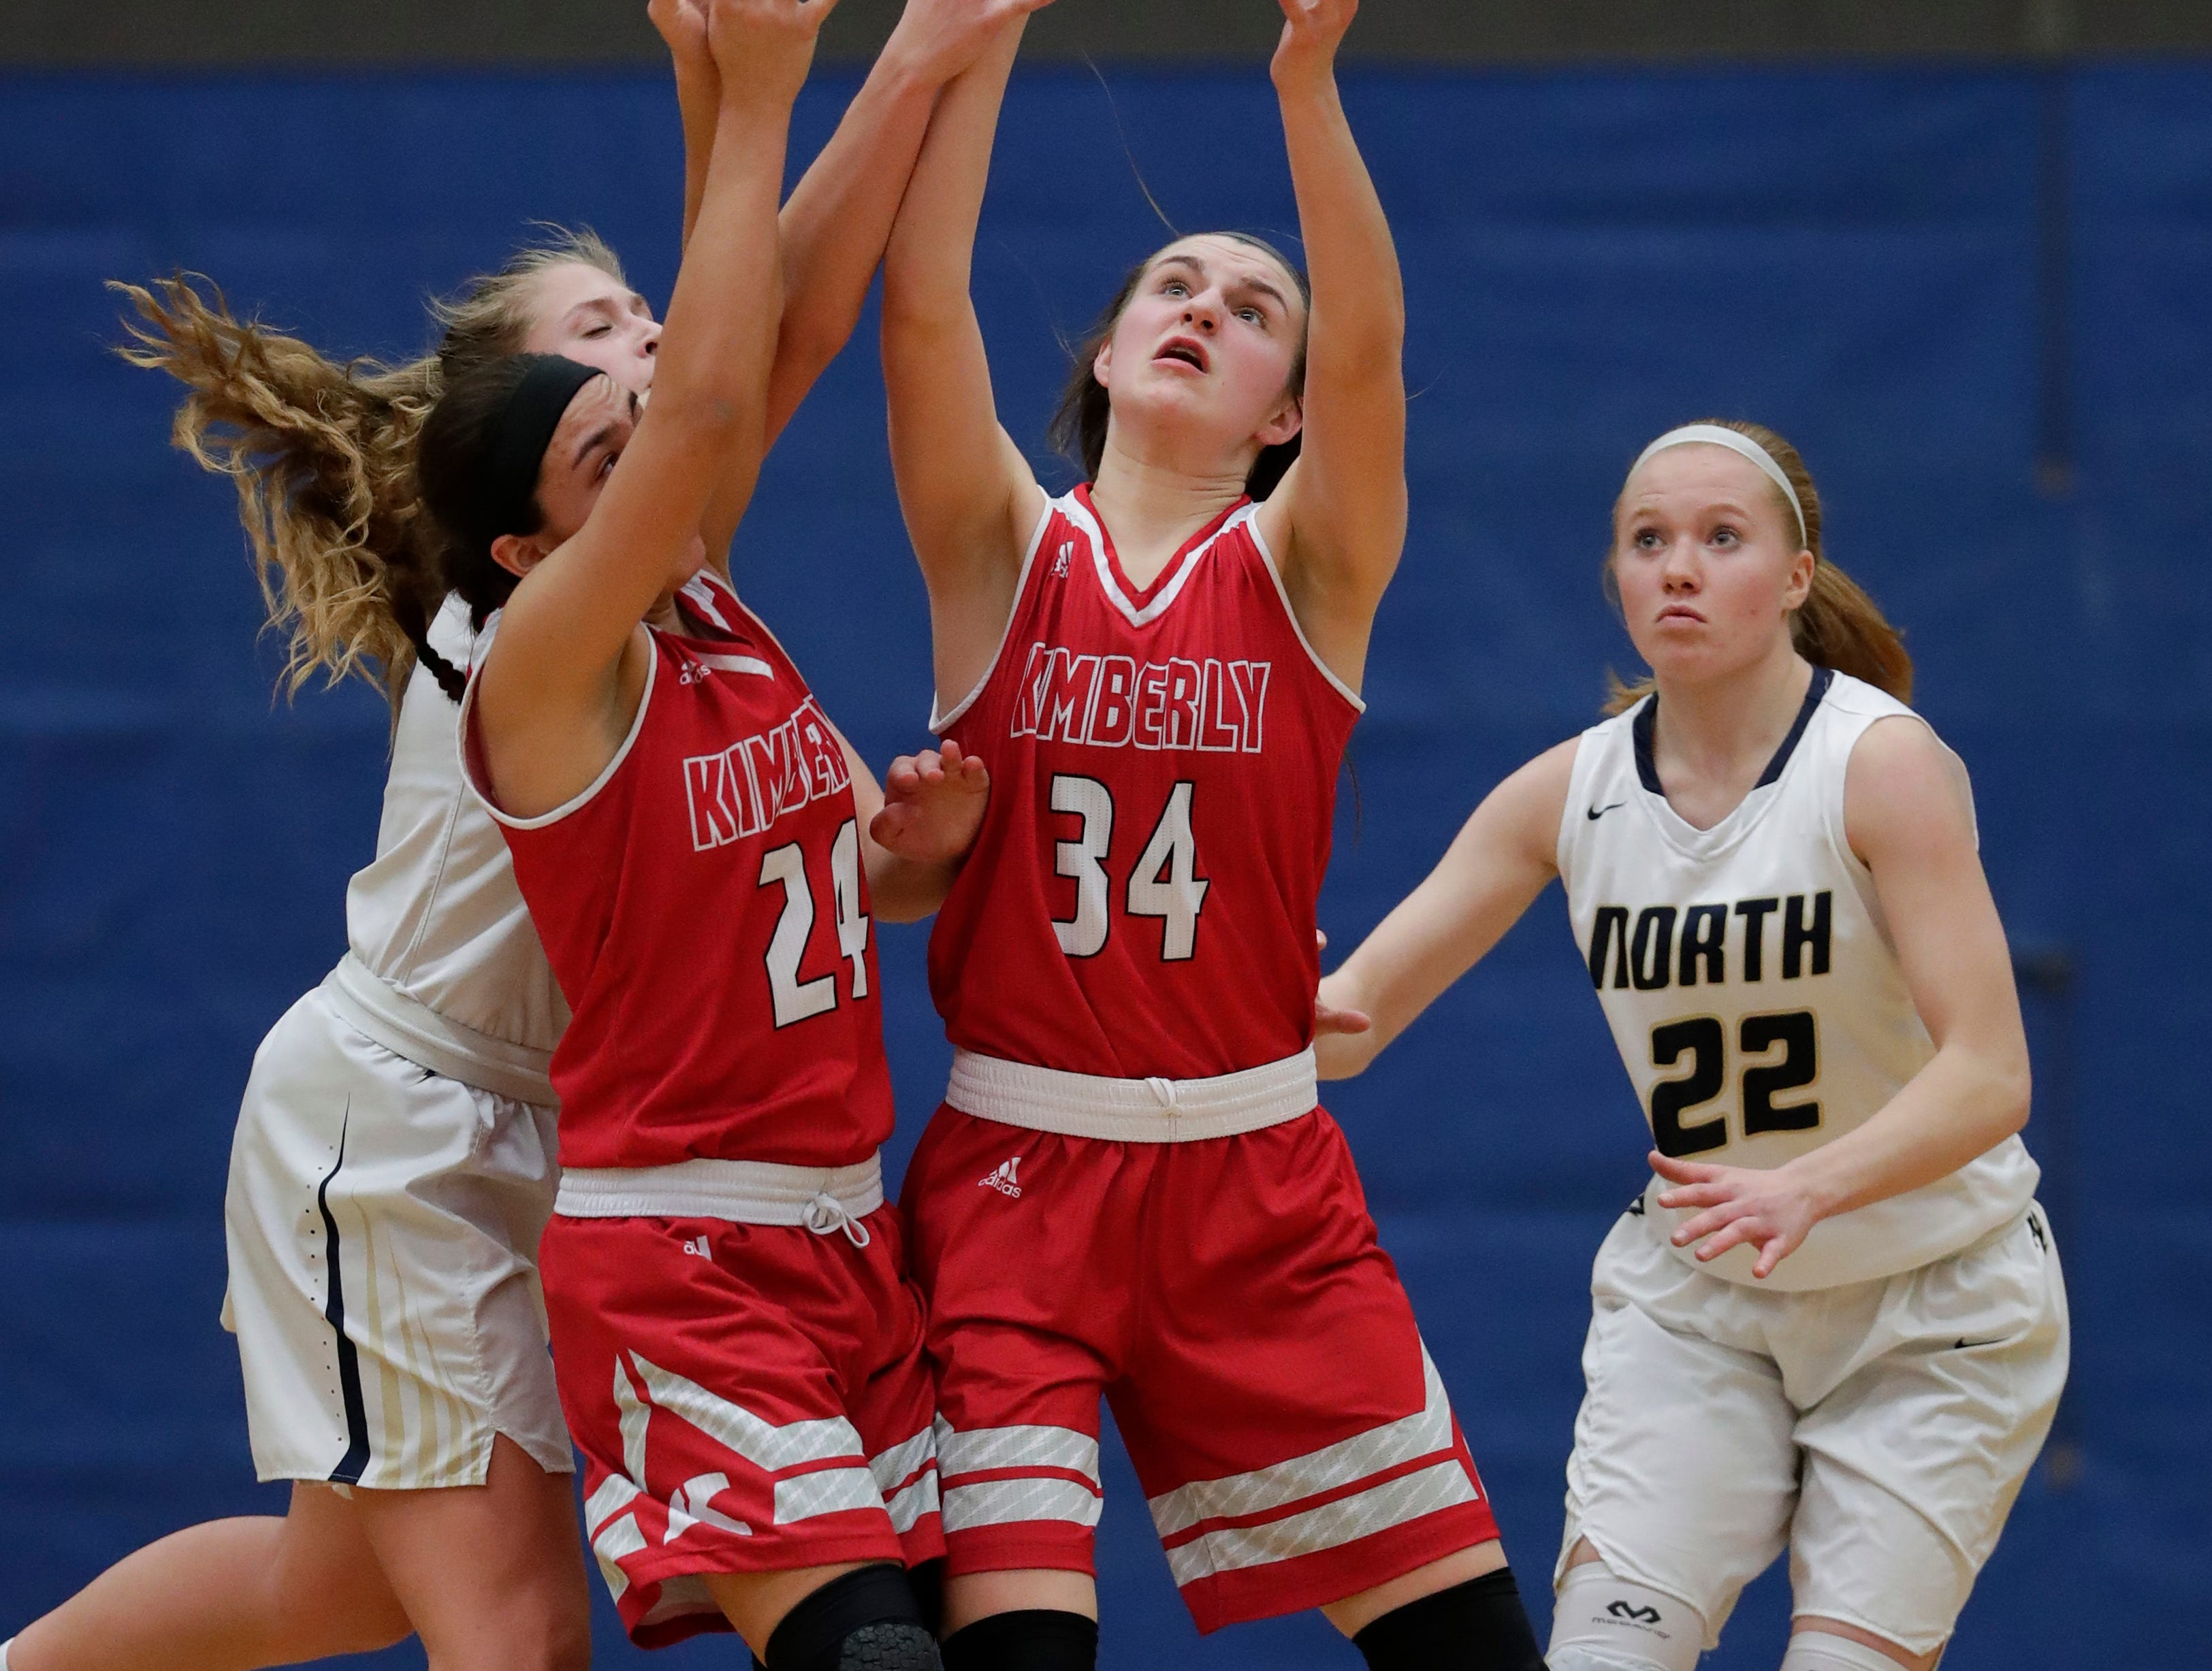 Appleton North High School's Lilli Van Handel (21) and Kayla Schroeder (22) go for a rebound against Kimberly High School's Shea Dechant (24) and Maddy Schreiber (34) during their girls basketball game Tuesday, January 8, 2019, in Appleton, Wis. 